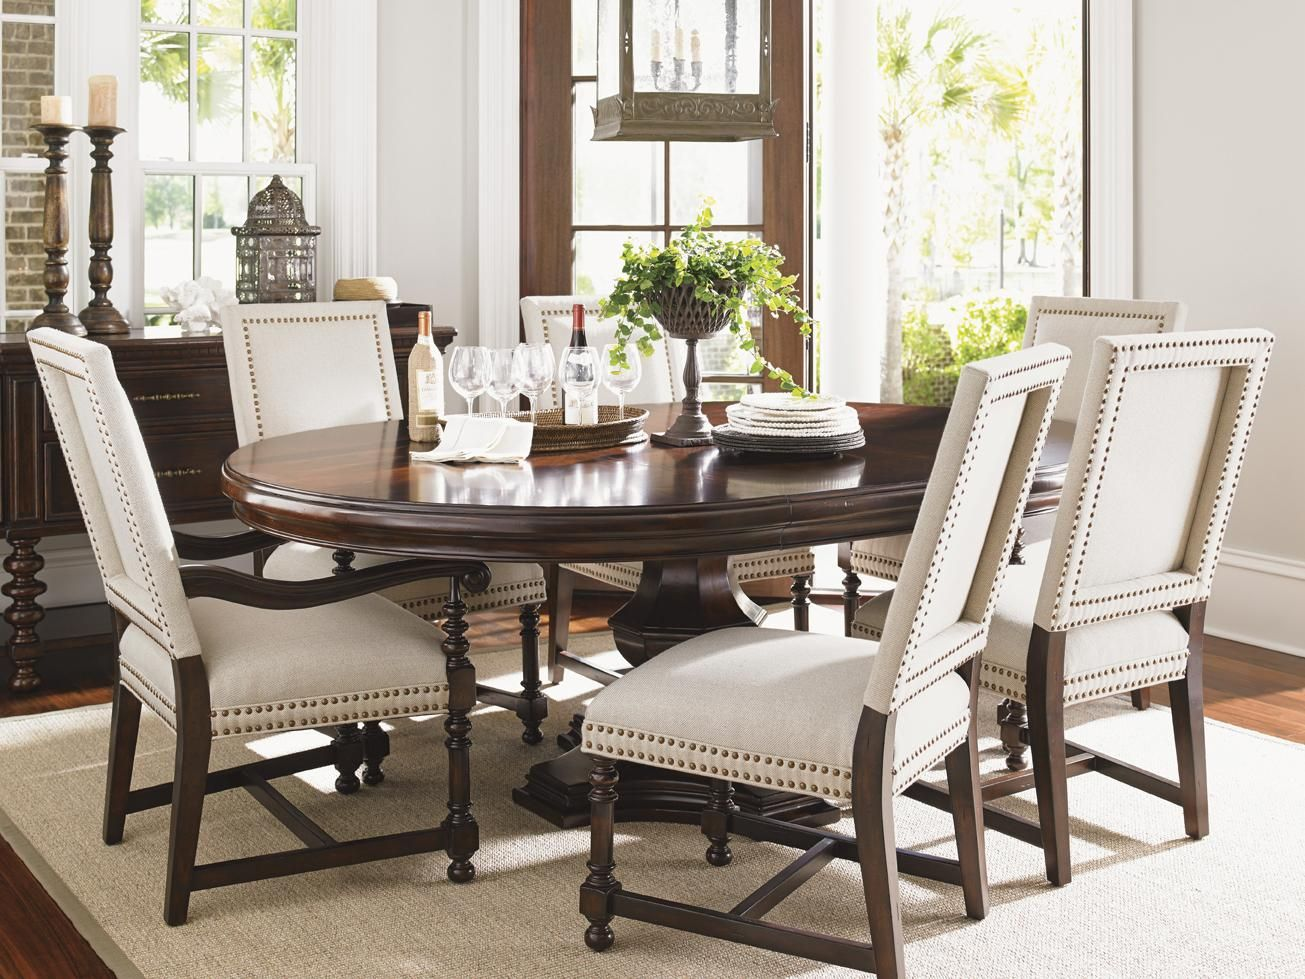 Tommy Bahama Home Kilimanjaro Maracaibo Dining Table Baer S Furniture Dining Room Table Boca Raton Naples Sarasota Ft Mye With Images Dining Room Sets Dining Chairs